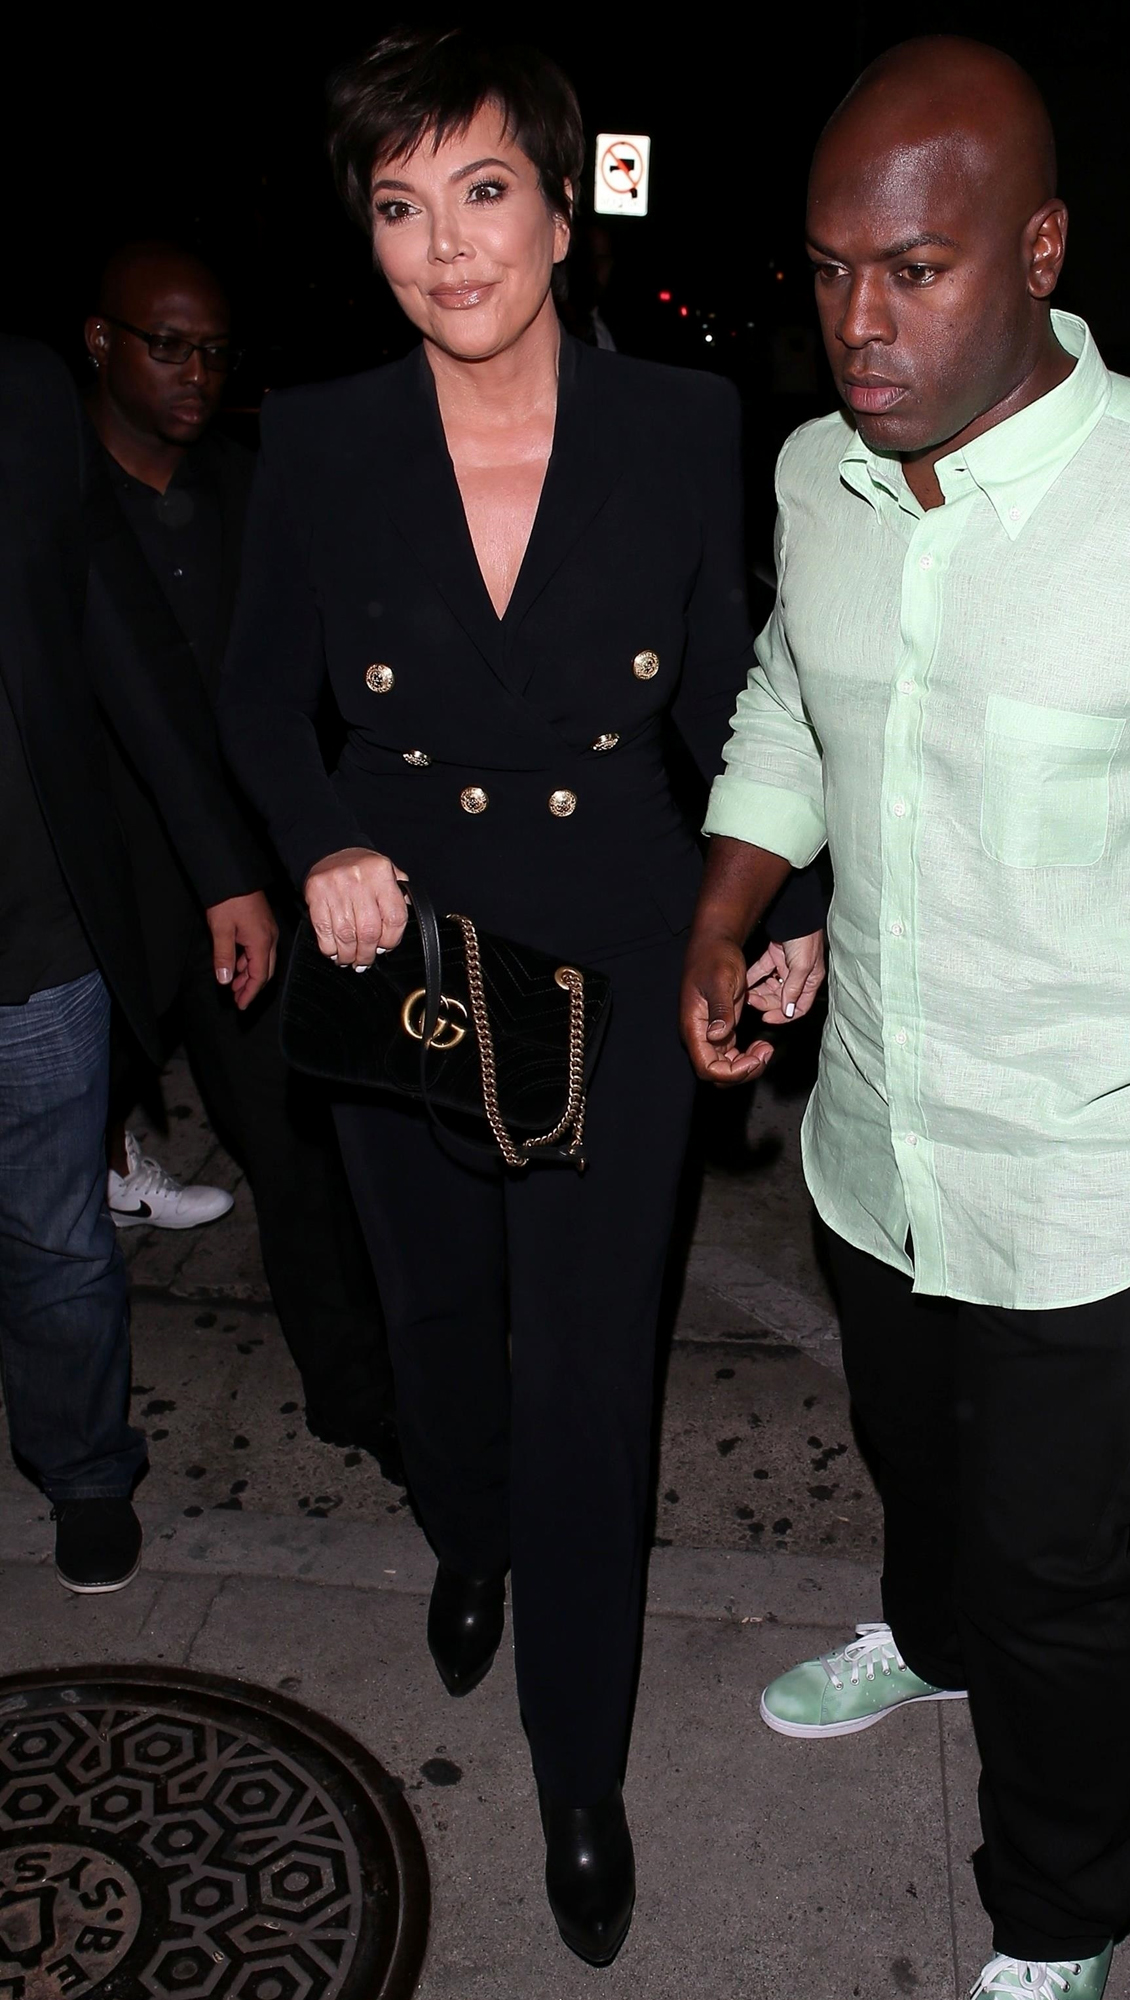 Kris Jenner and Corey Gamble at Craig's for Kylie's birthday